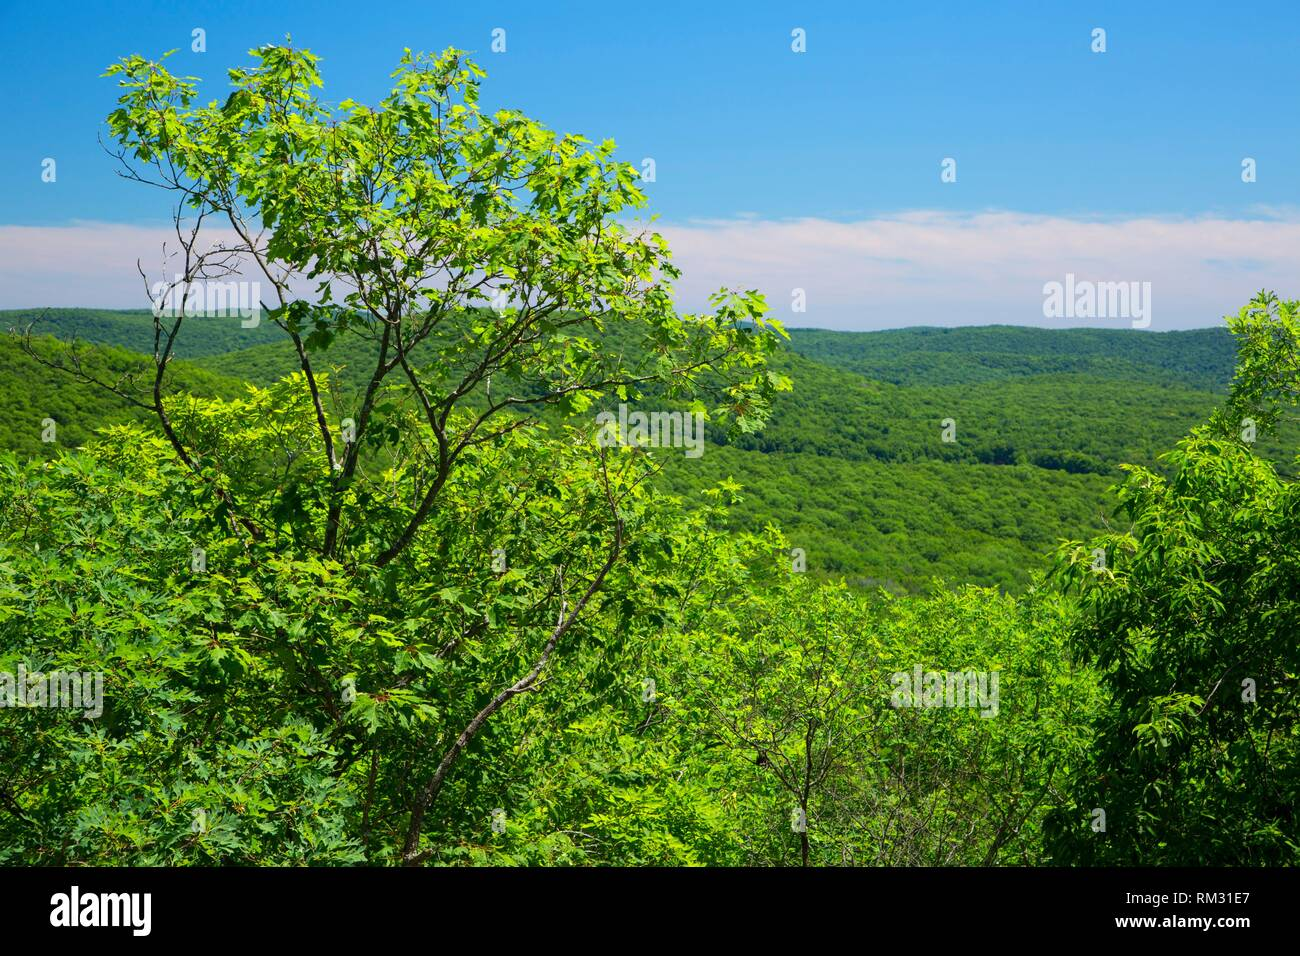 View on Macedonia Ridge Trail, Macedonia Brook State Park, Connecticut. - Stock Image